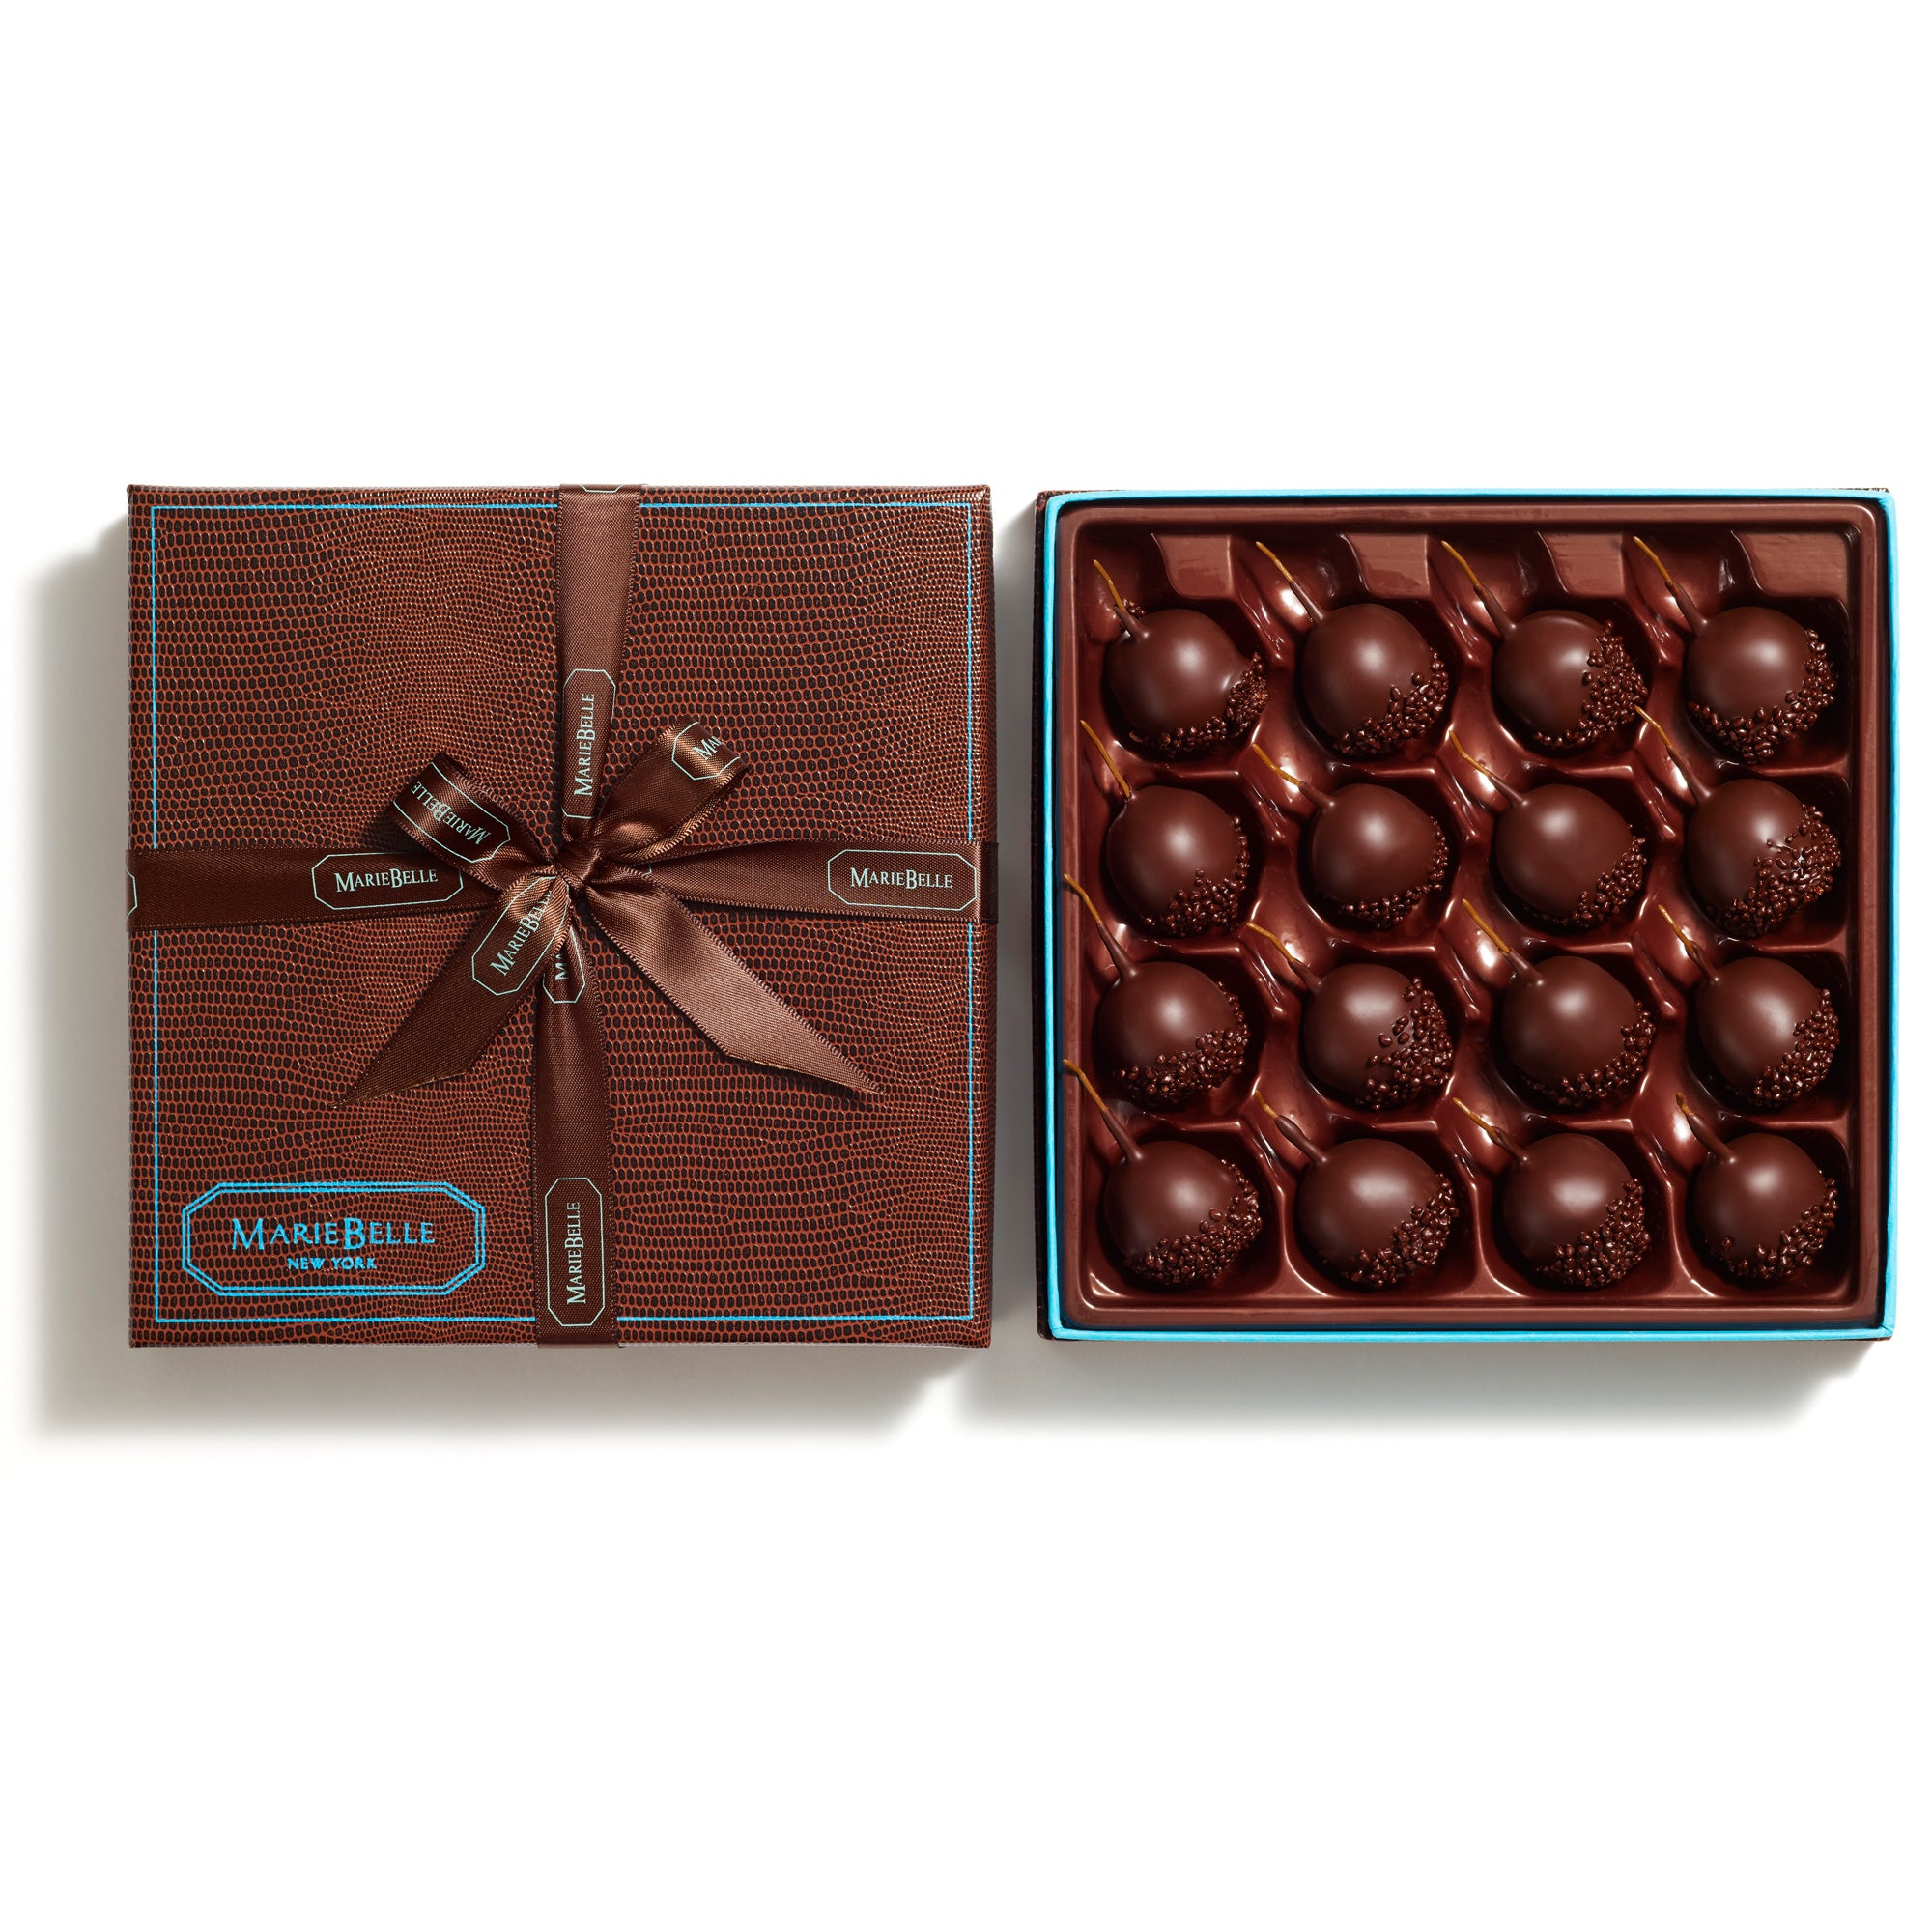 16pc Chocolate Cherries Box